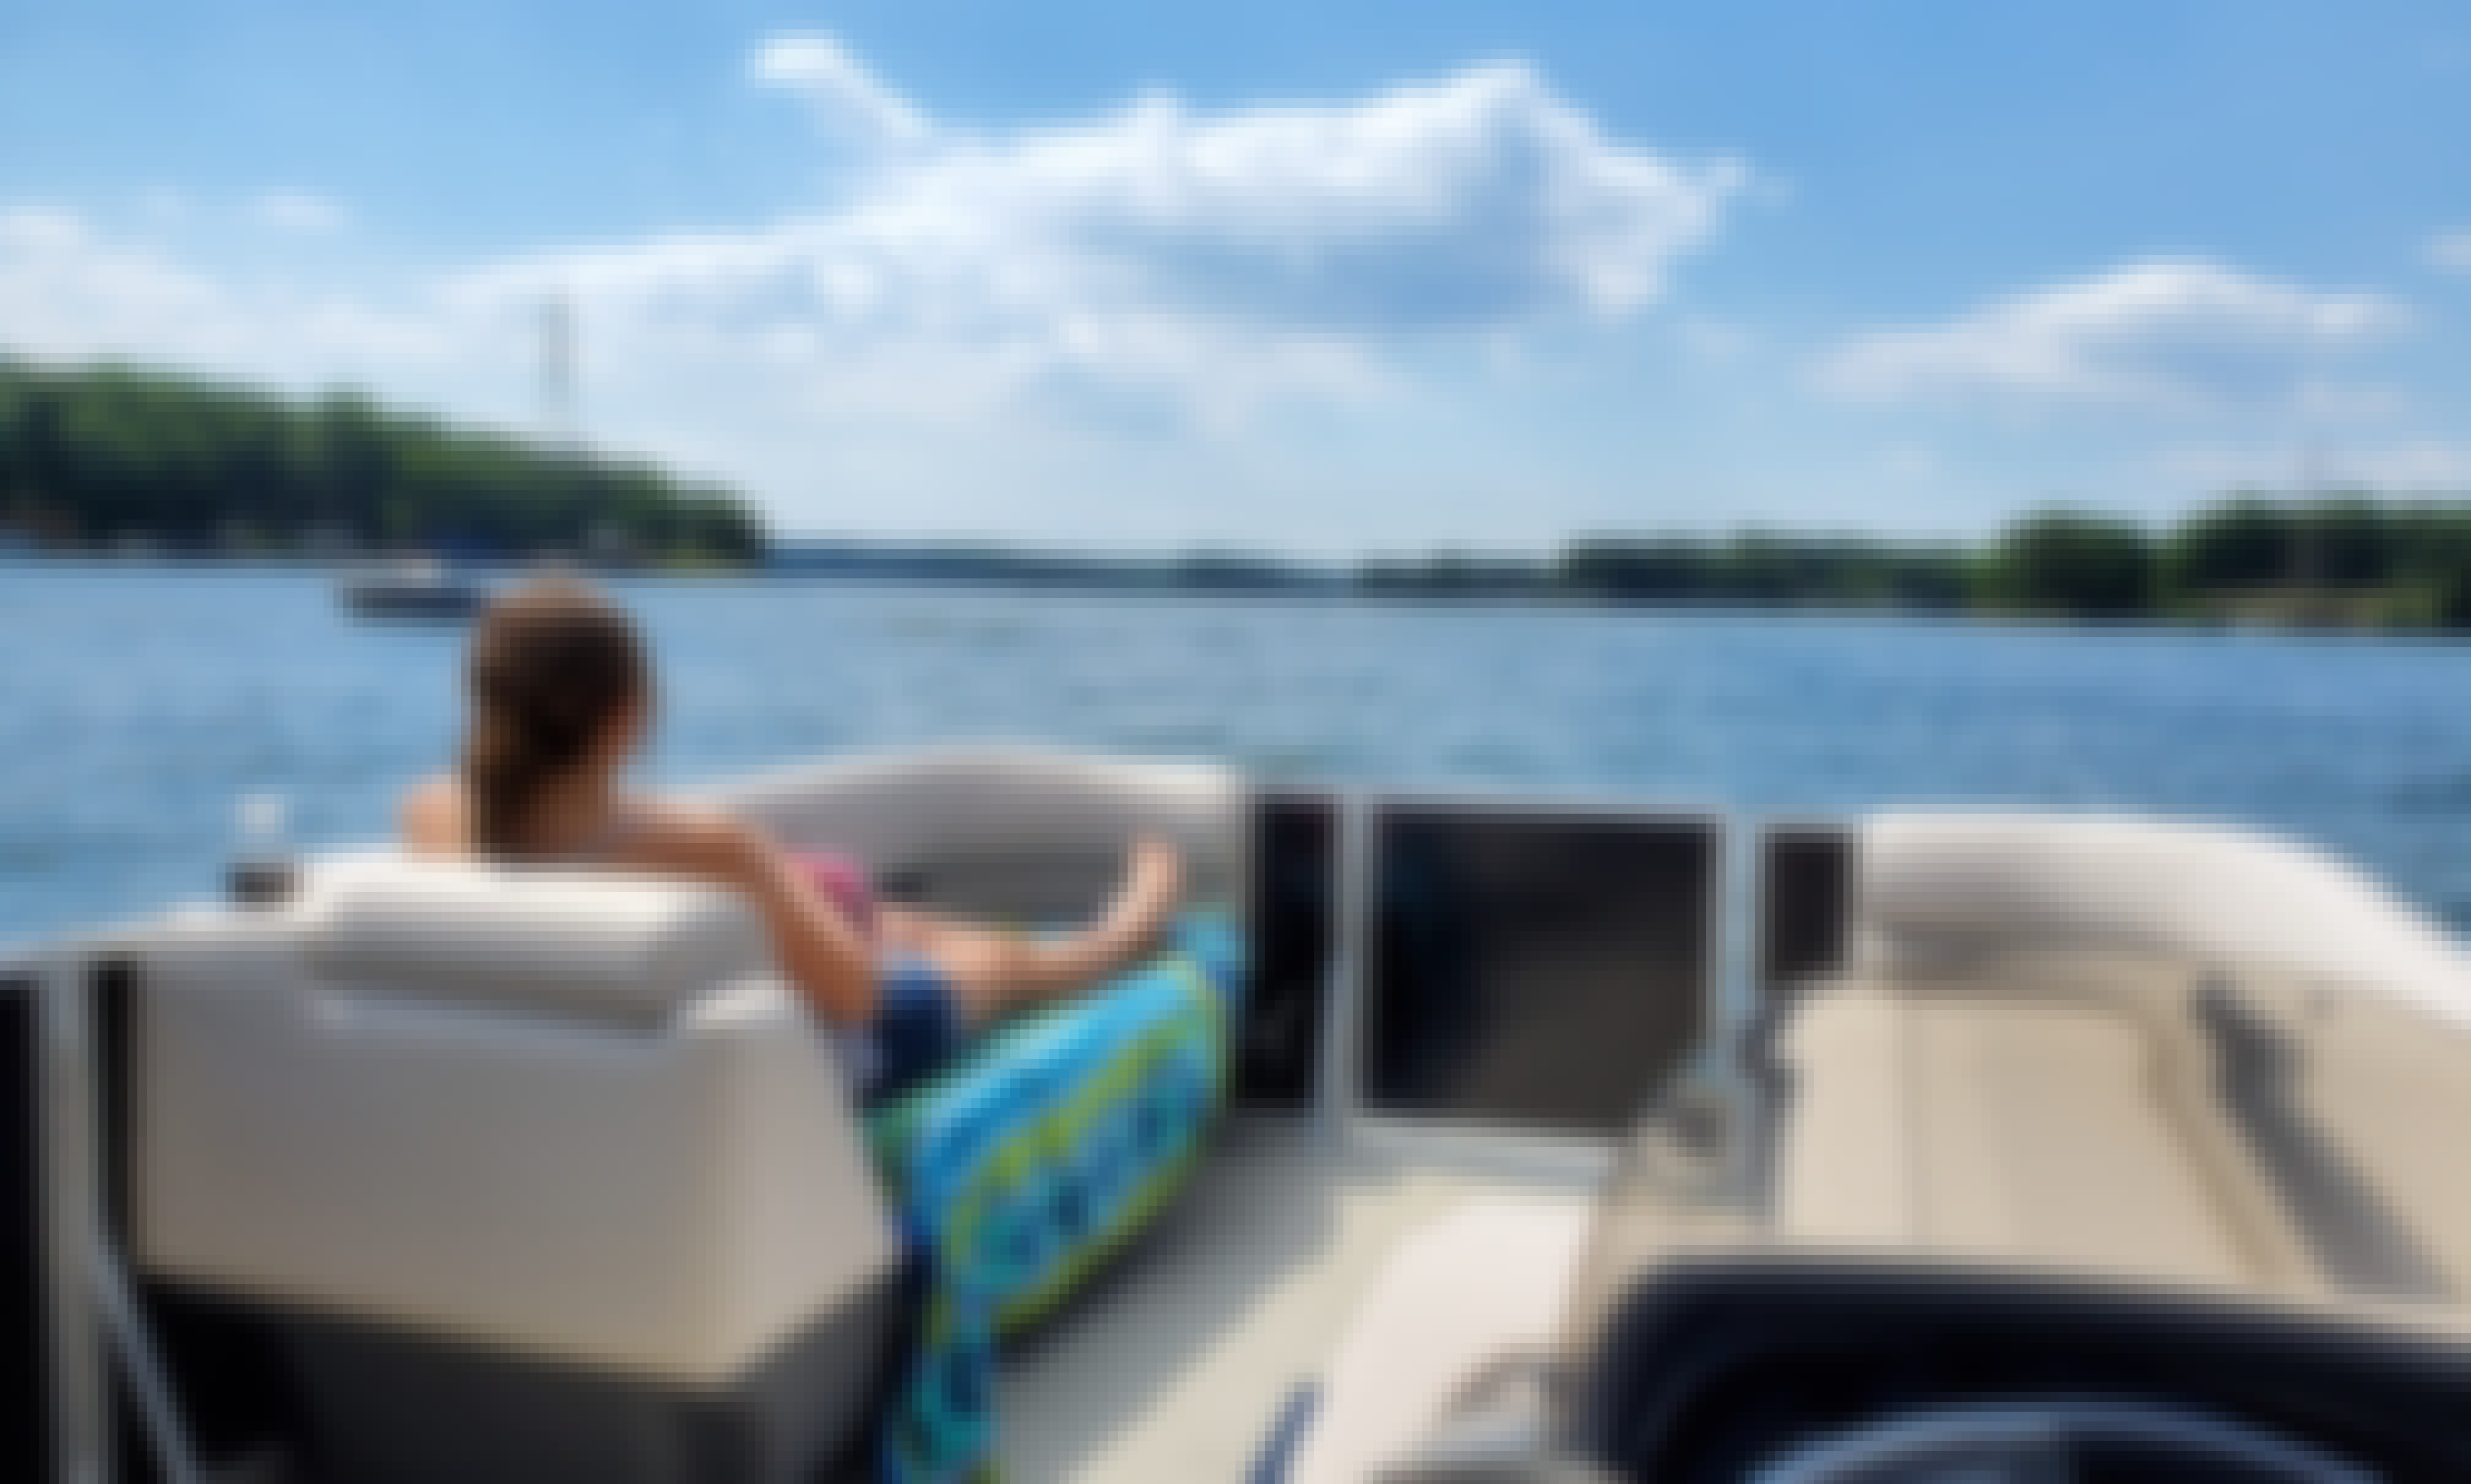 Cruise, swim, party and enjoy on a brand new 2020 Tritoon on Lake Norman